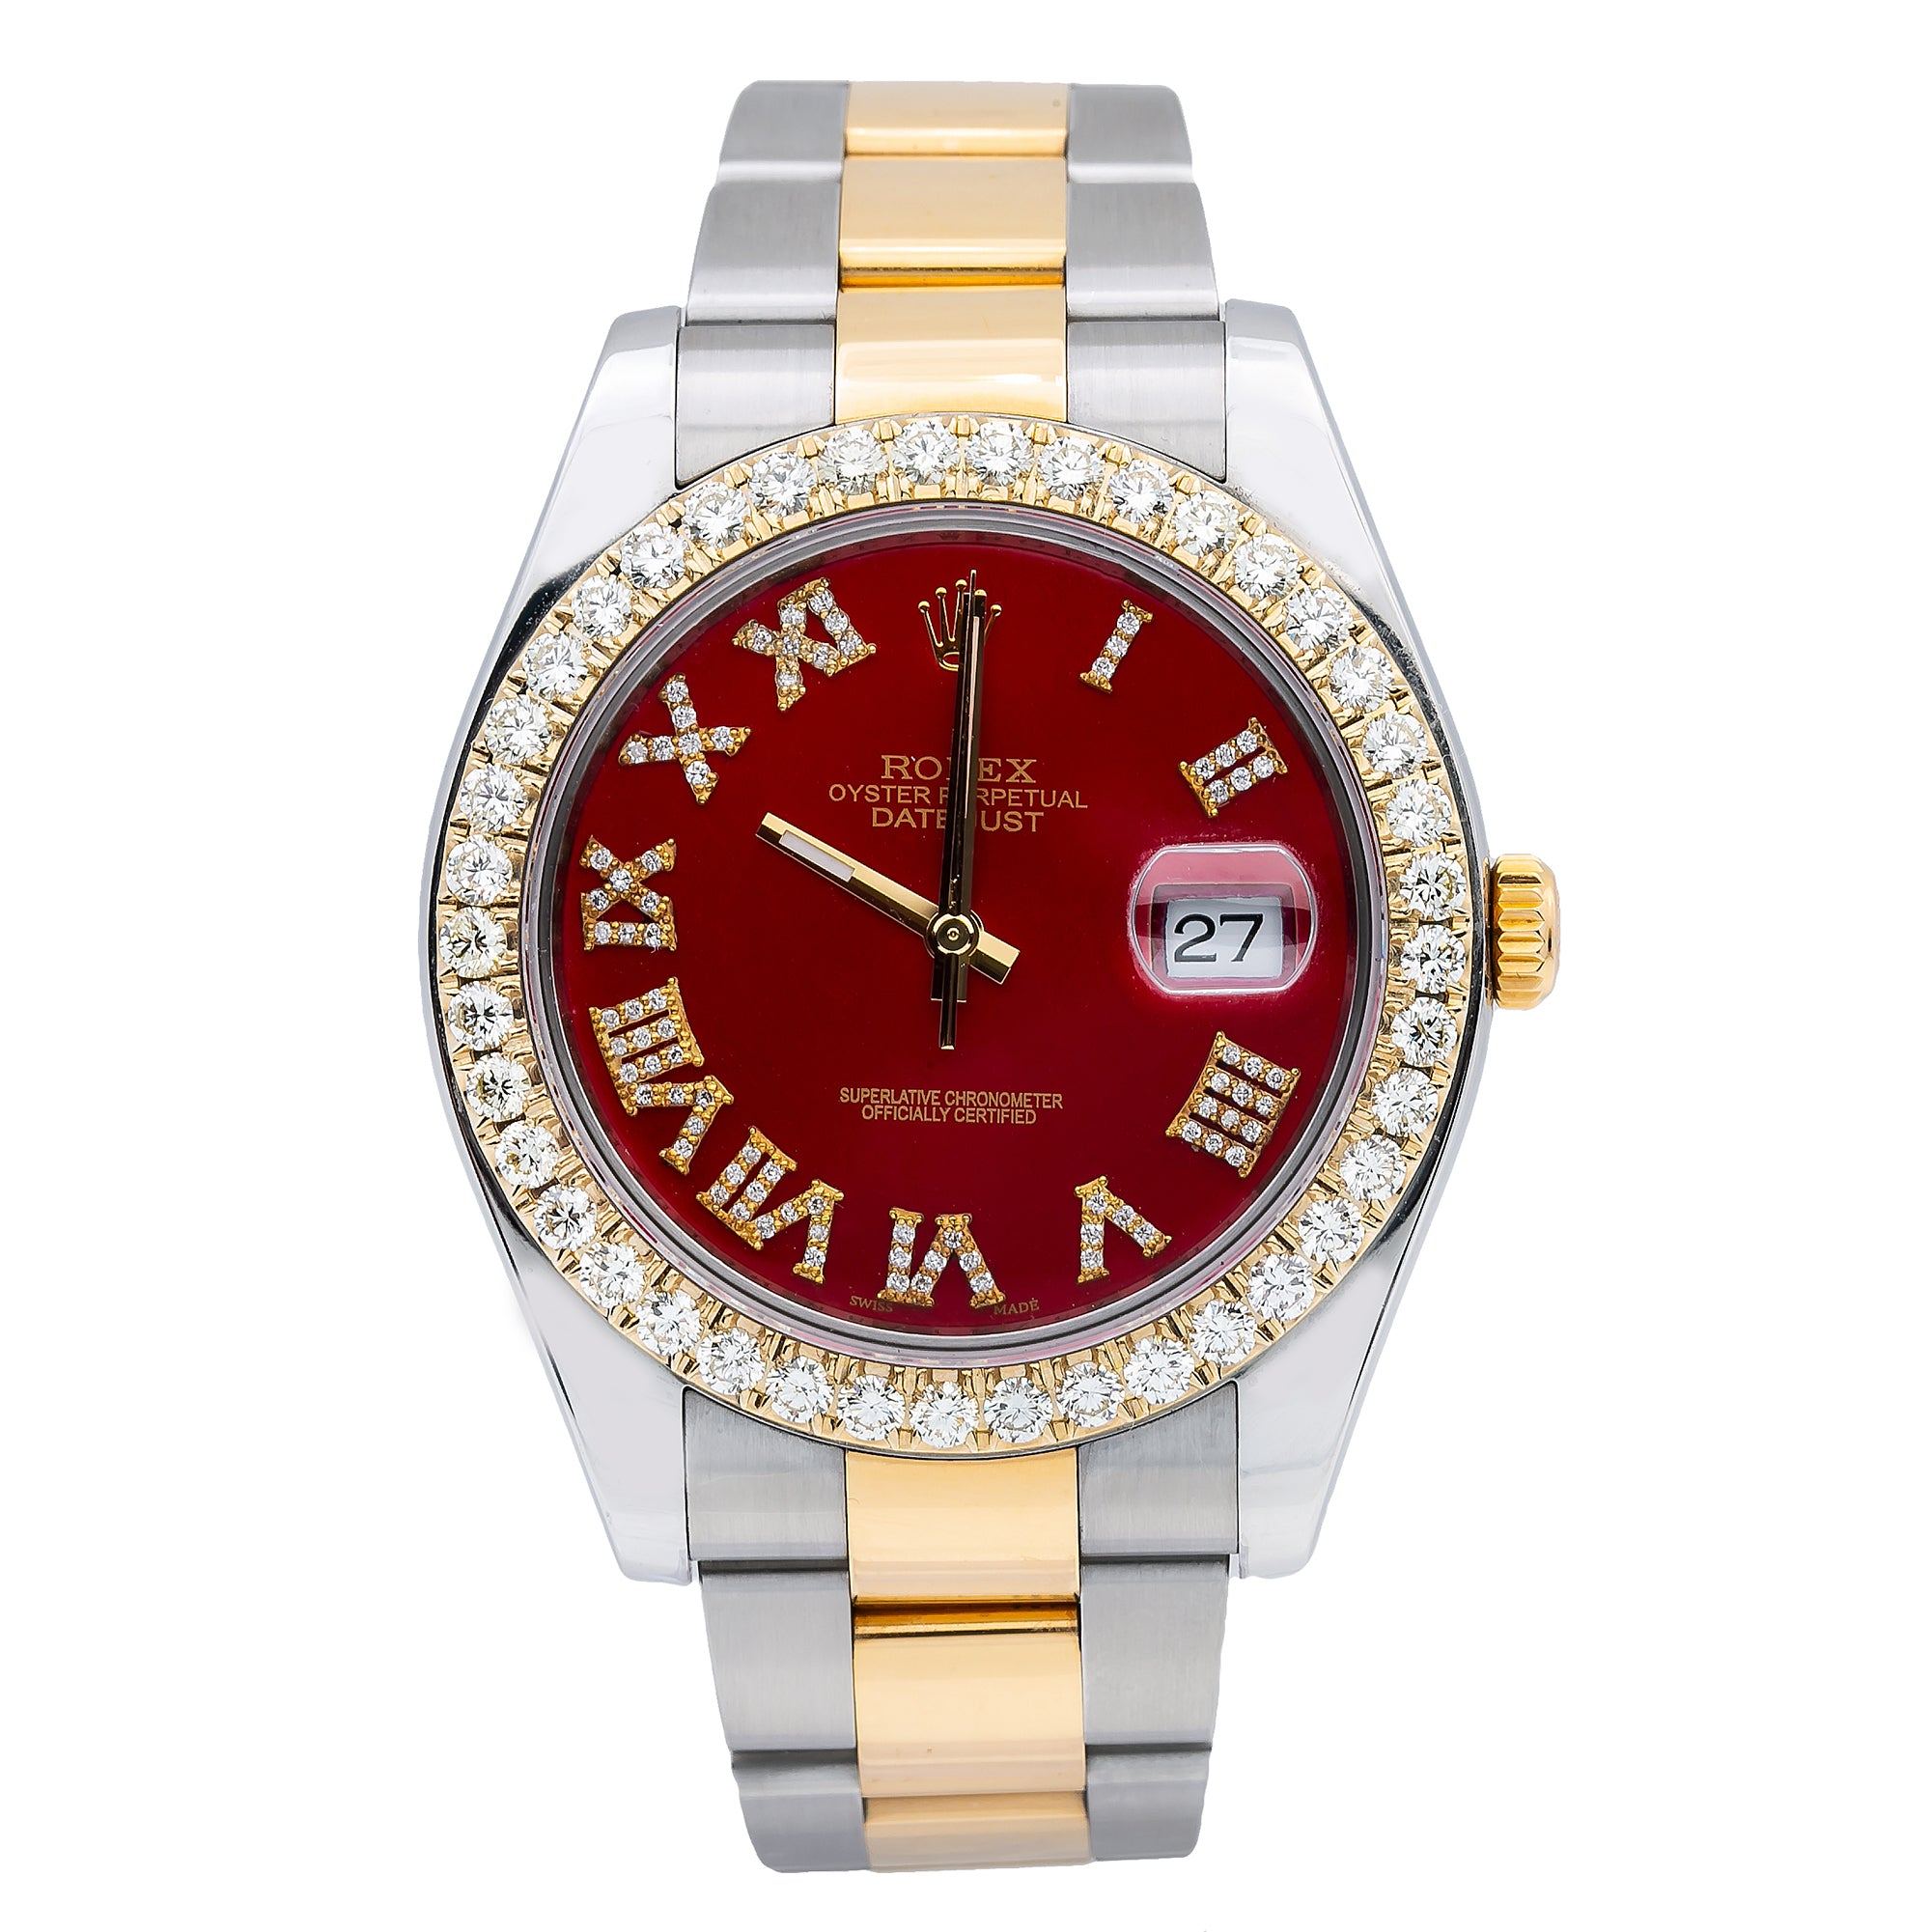 Rolex Datejust II 116333 41MM Red Diamond Dial With Two Tone Oyster Bracelet